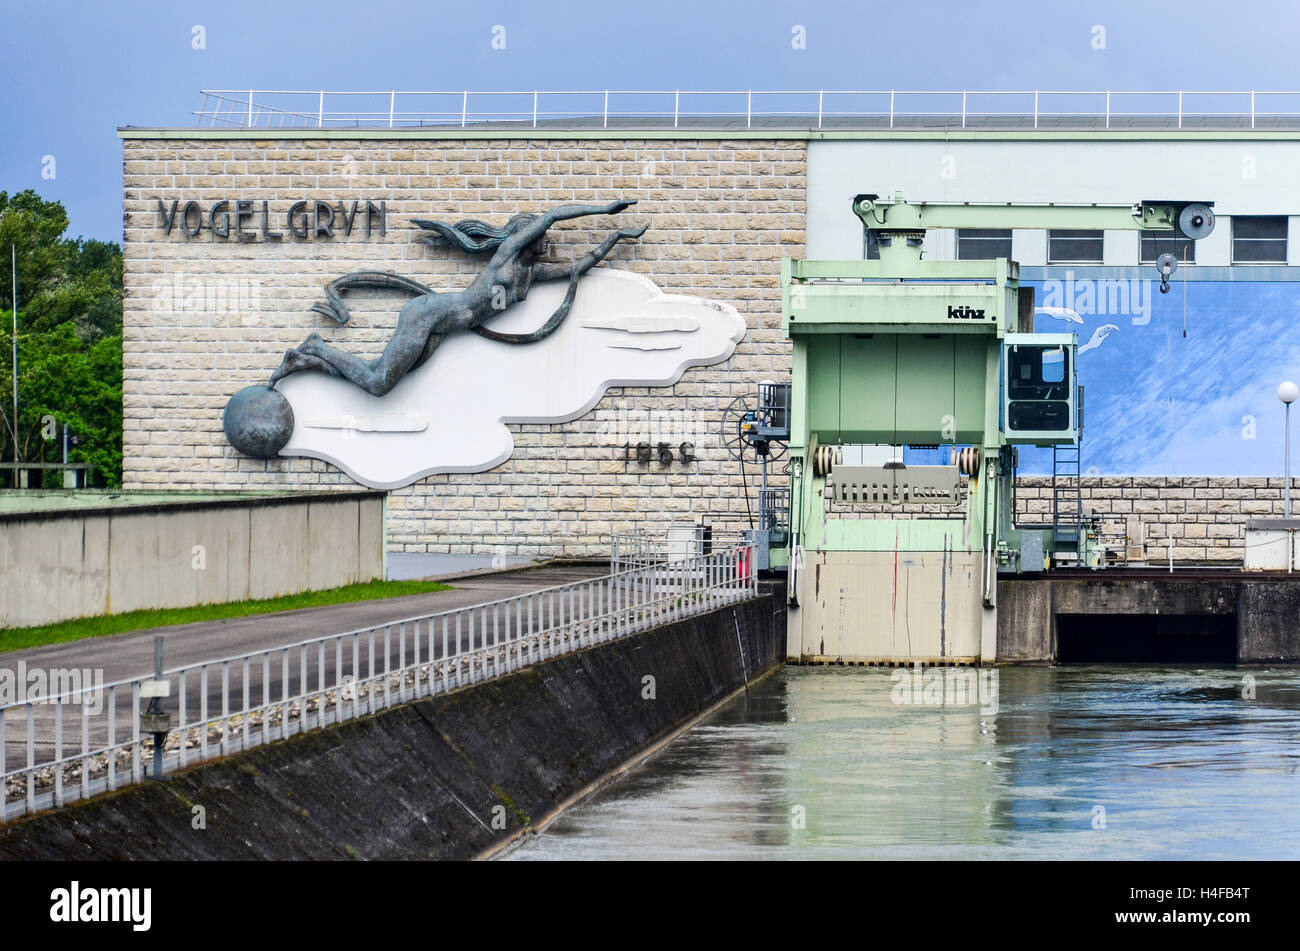 Vogelgrun hydro power plant on the Rhine river, between France and Germany - Stock Image